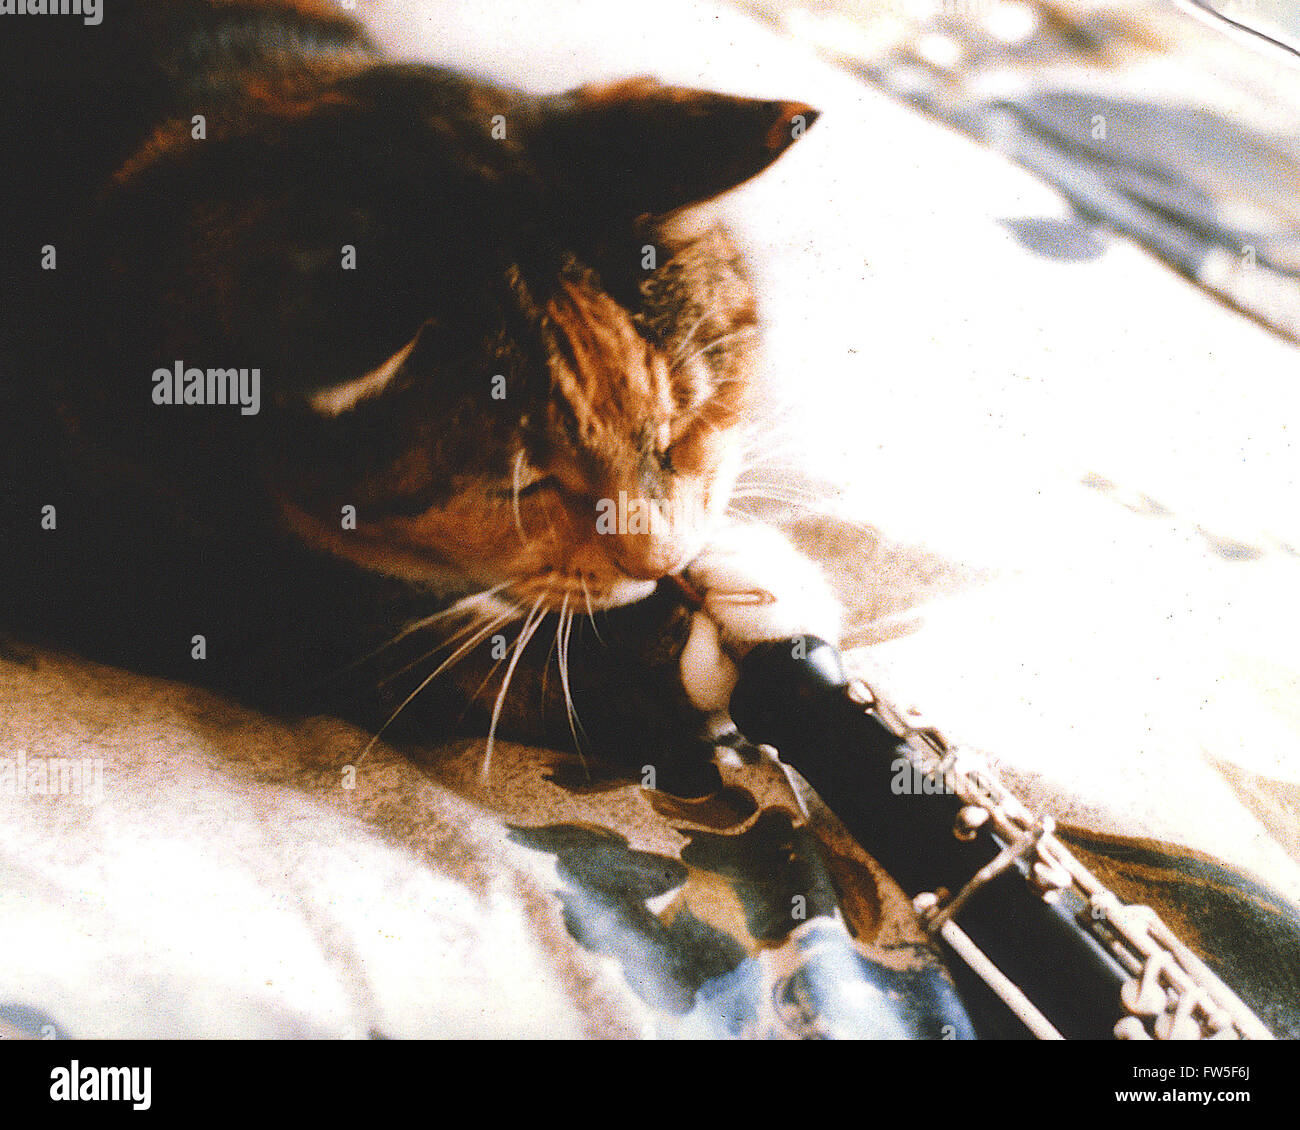 Cat 'playing' oboe. Titled: 'Pushkin the Famous oboe-playing cat'.  Cute - Stock Image